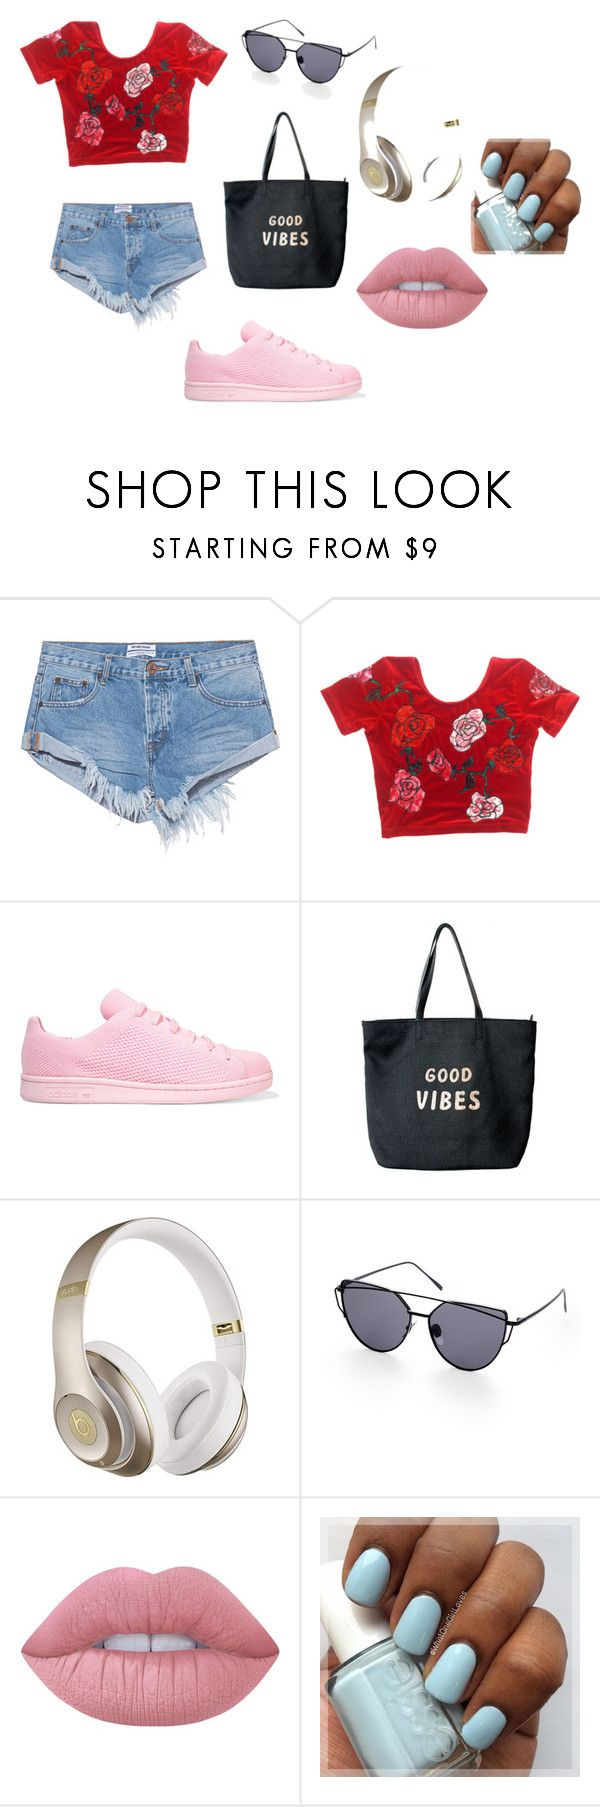 23 by espe-rebollo on Polyvore featuring moda, One Teaspoon, adidas Originals, Venus, Beats by Dr. Dre and Lime Crime